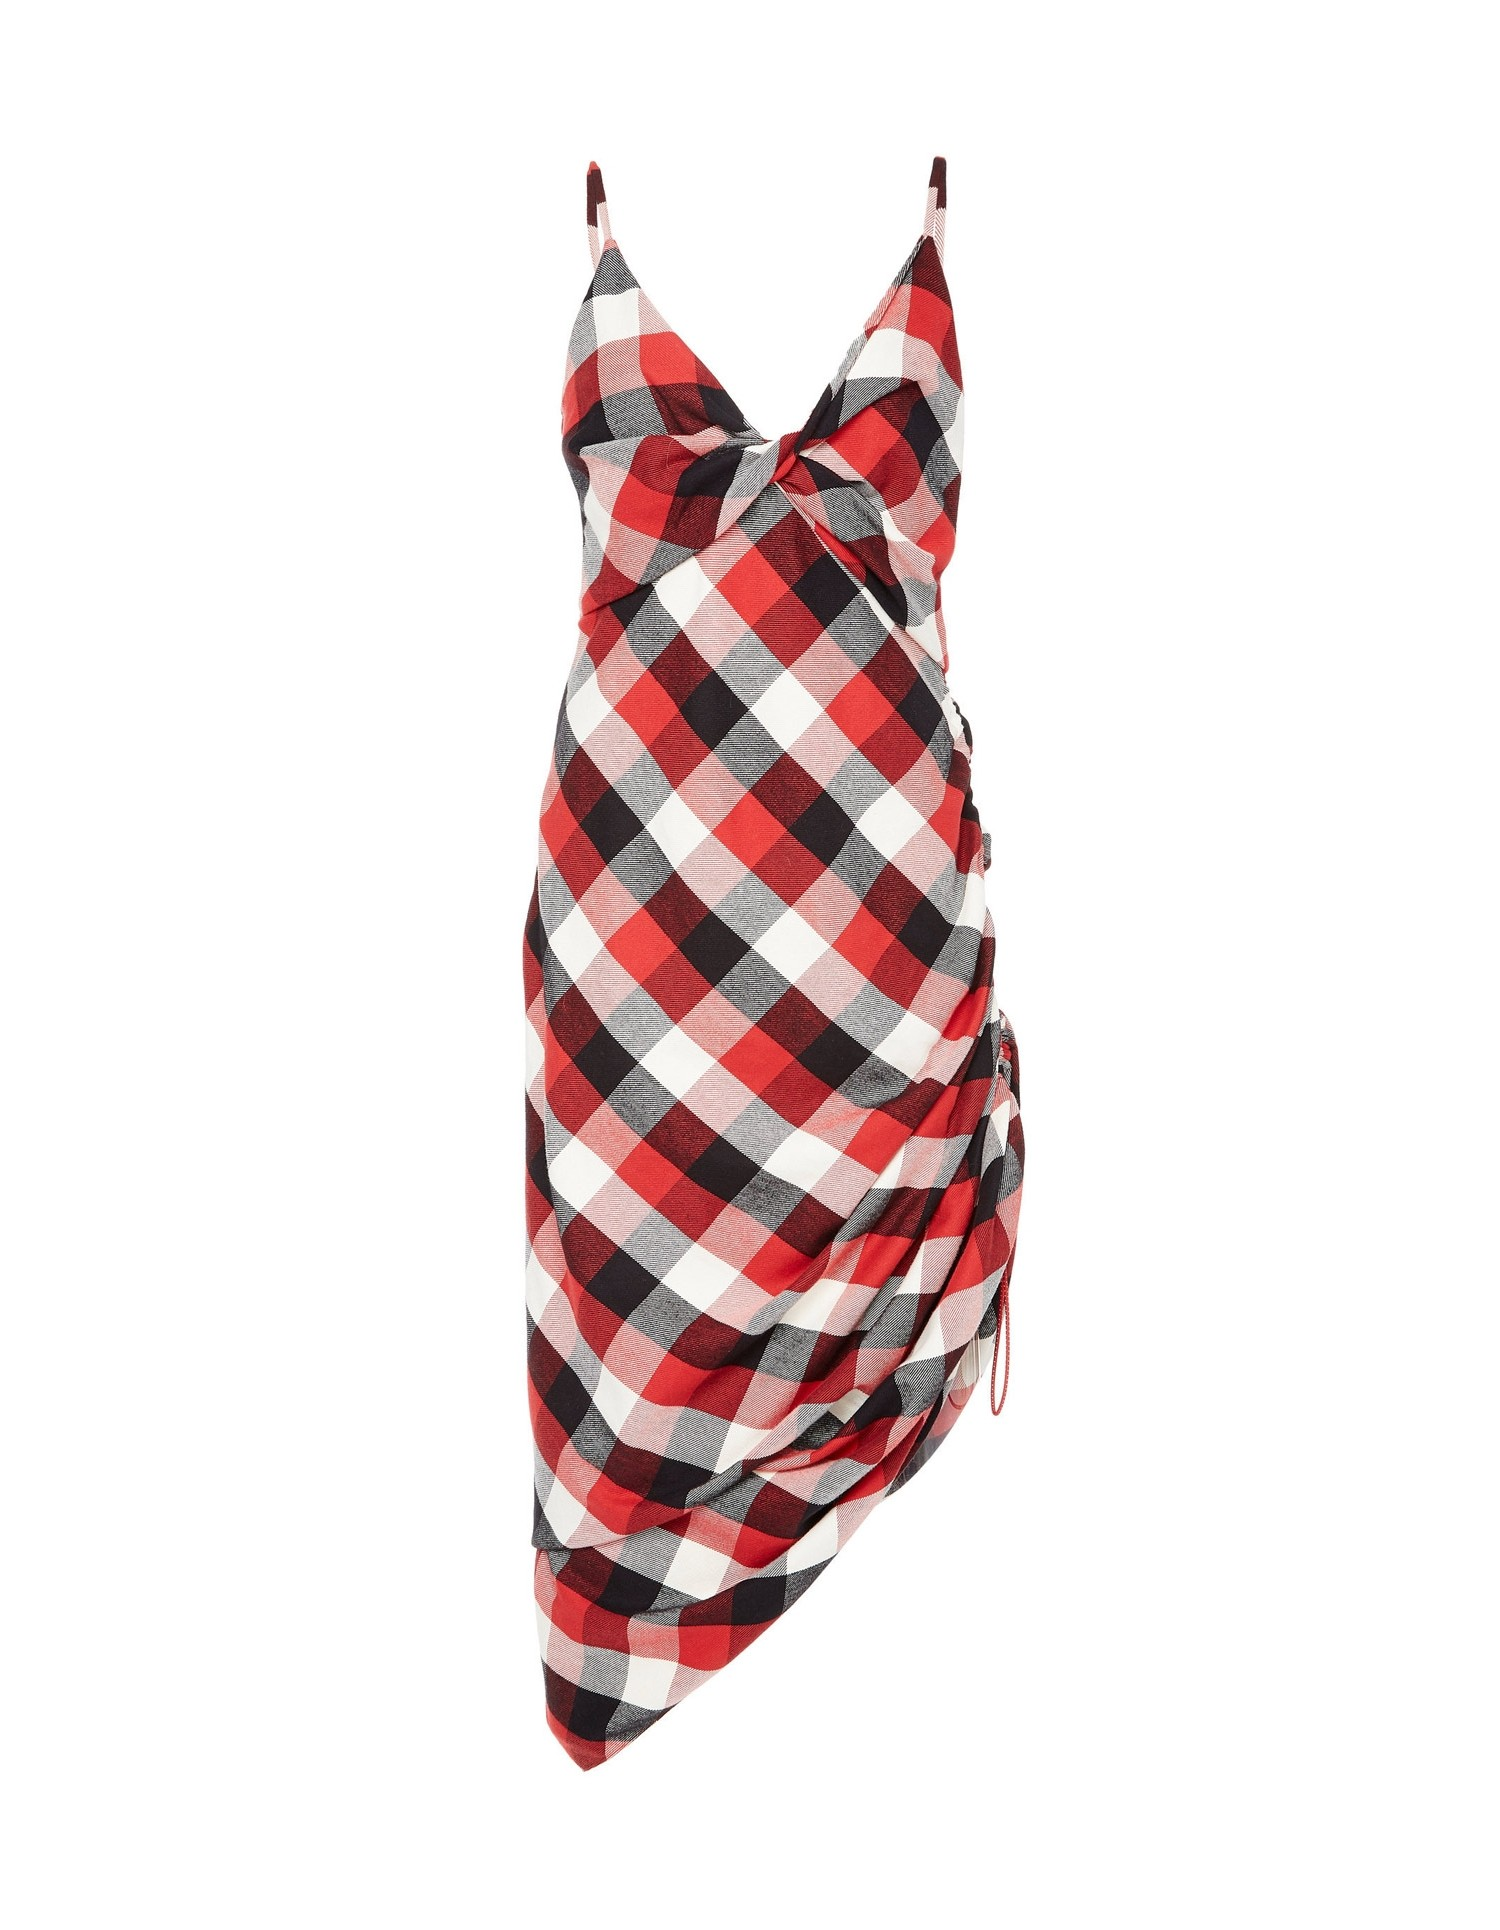 MONSE Twisted Plaid Slip Dress on Model Front View